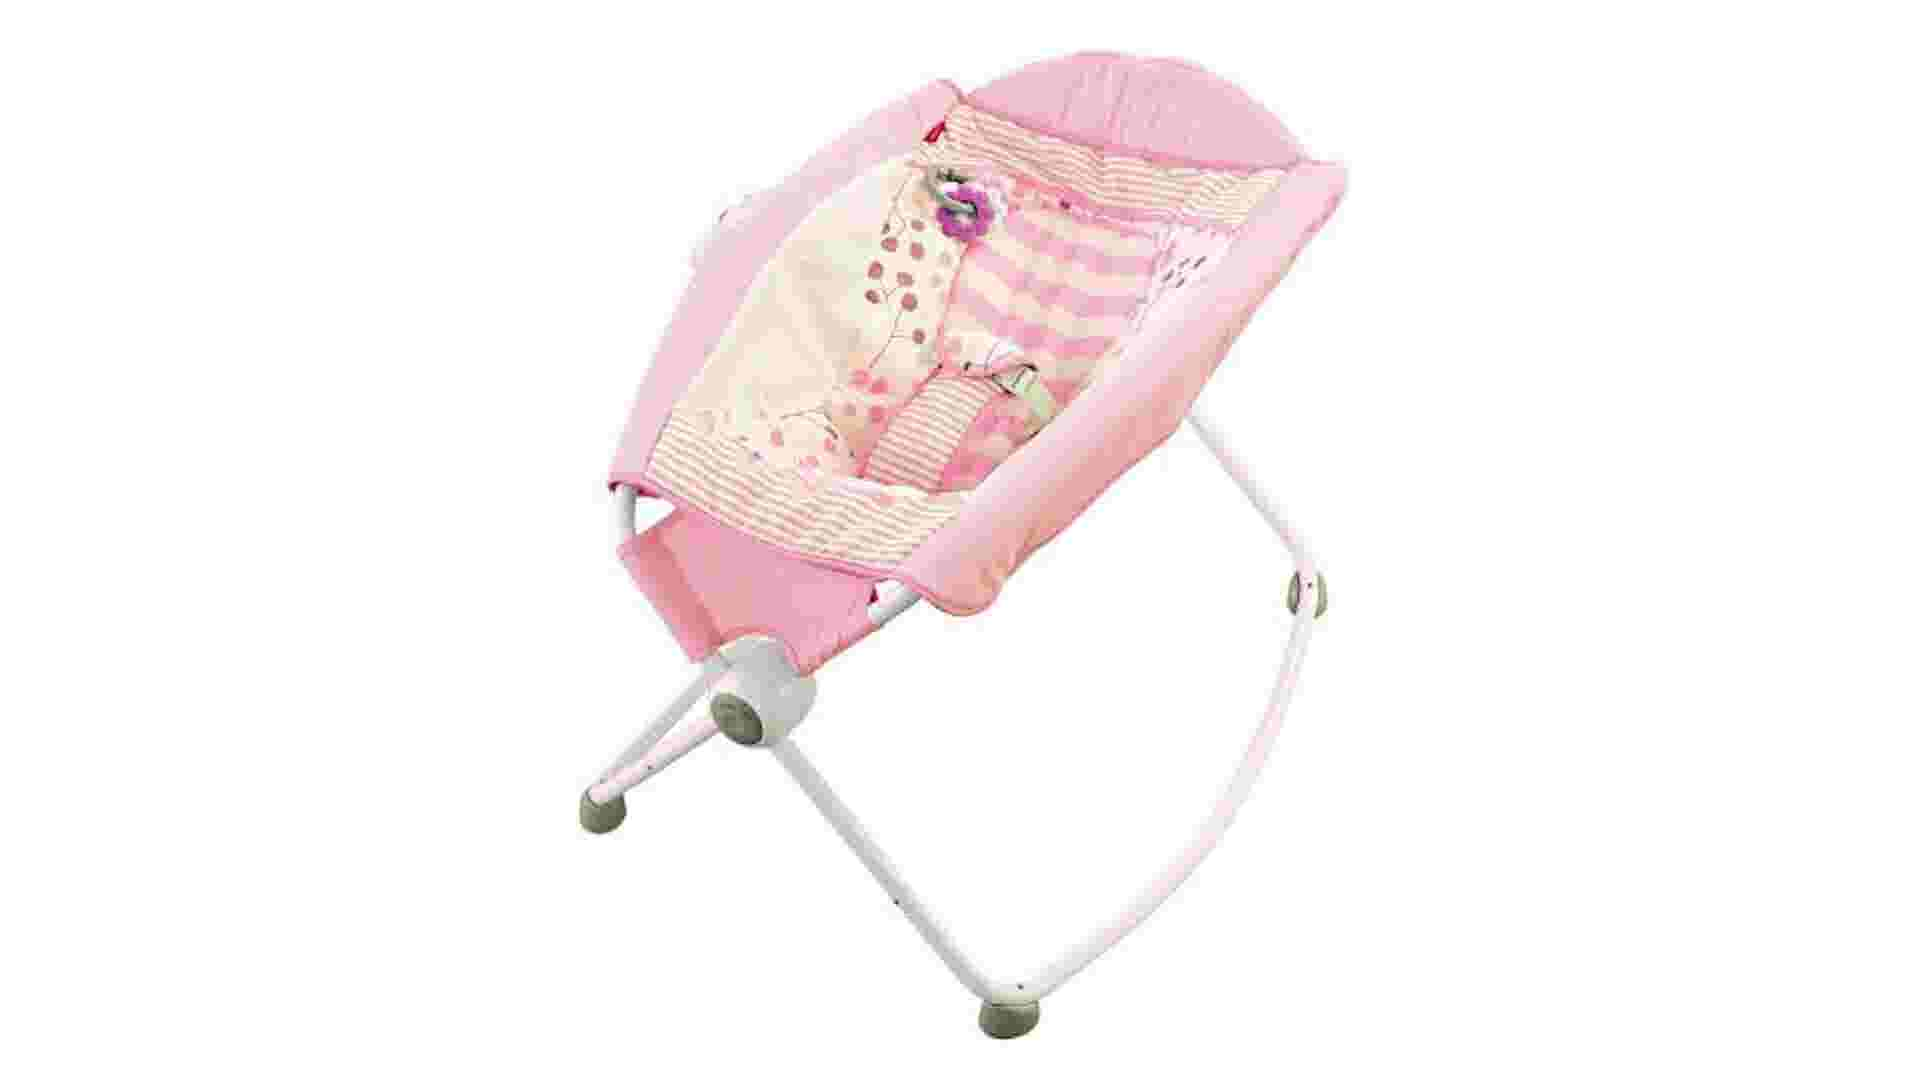 Fisher-Price issues official recall after safety alert, infant deaths